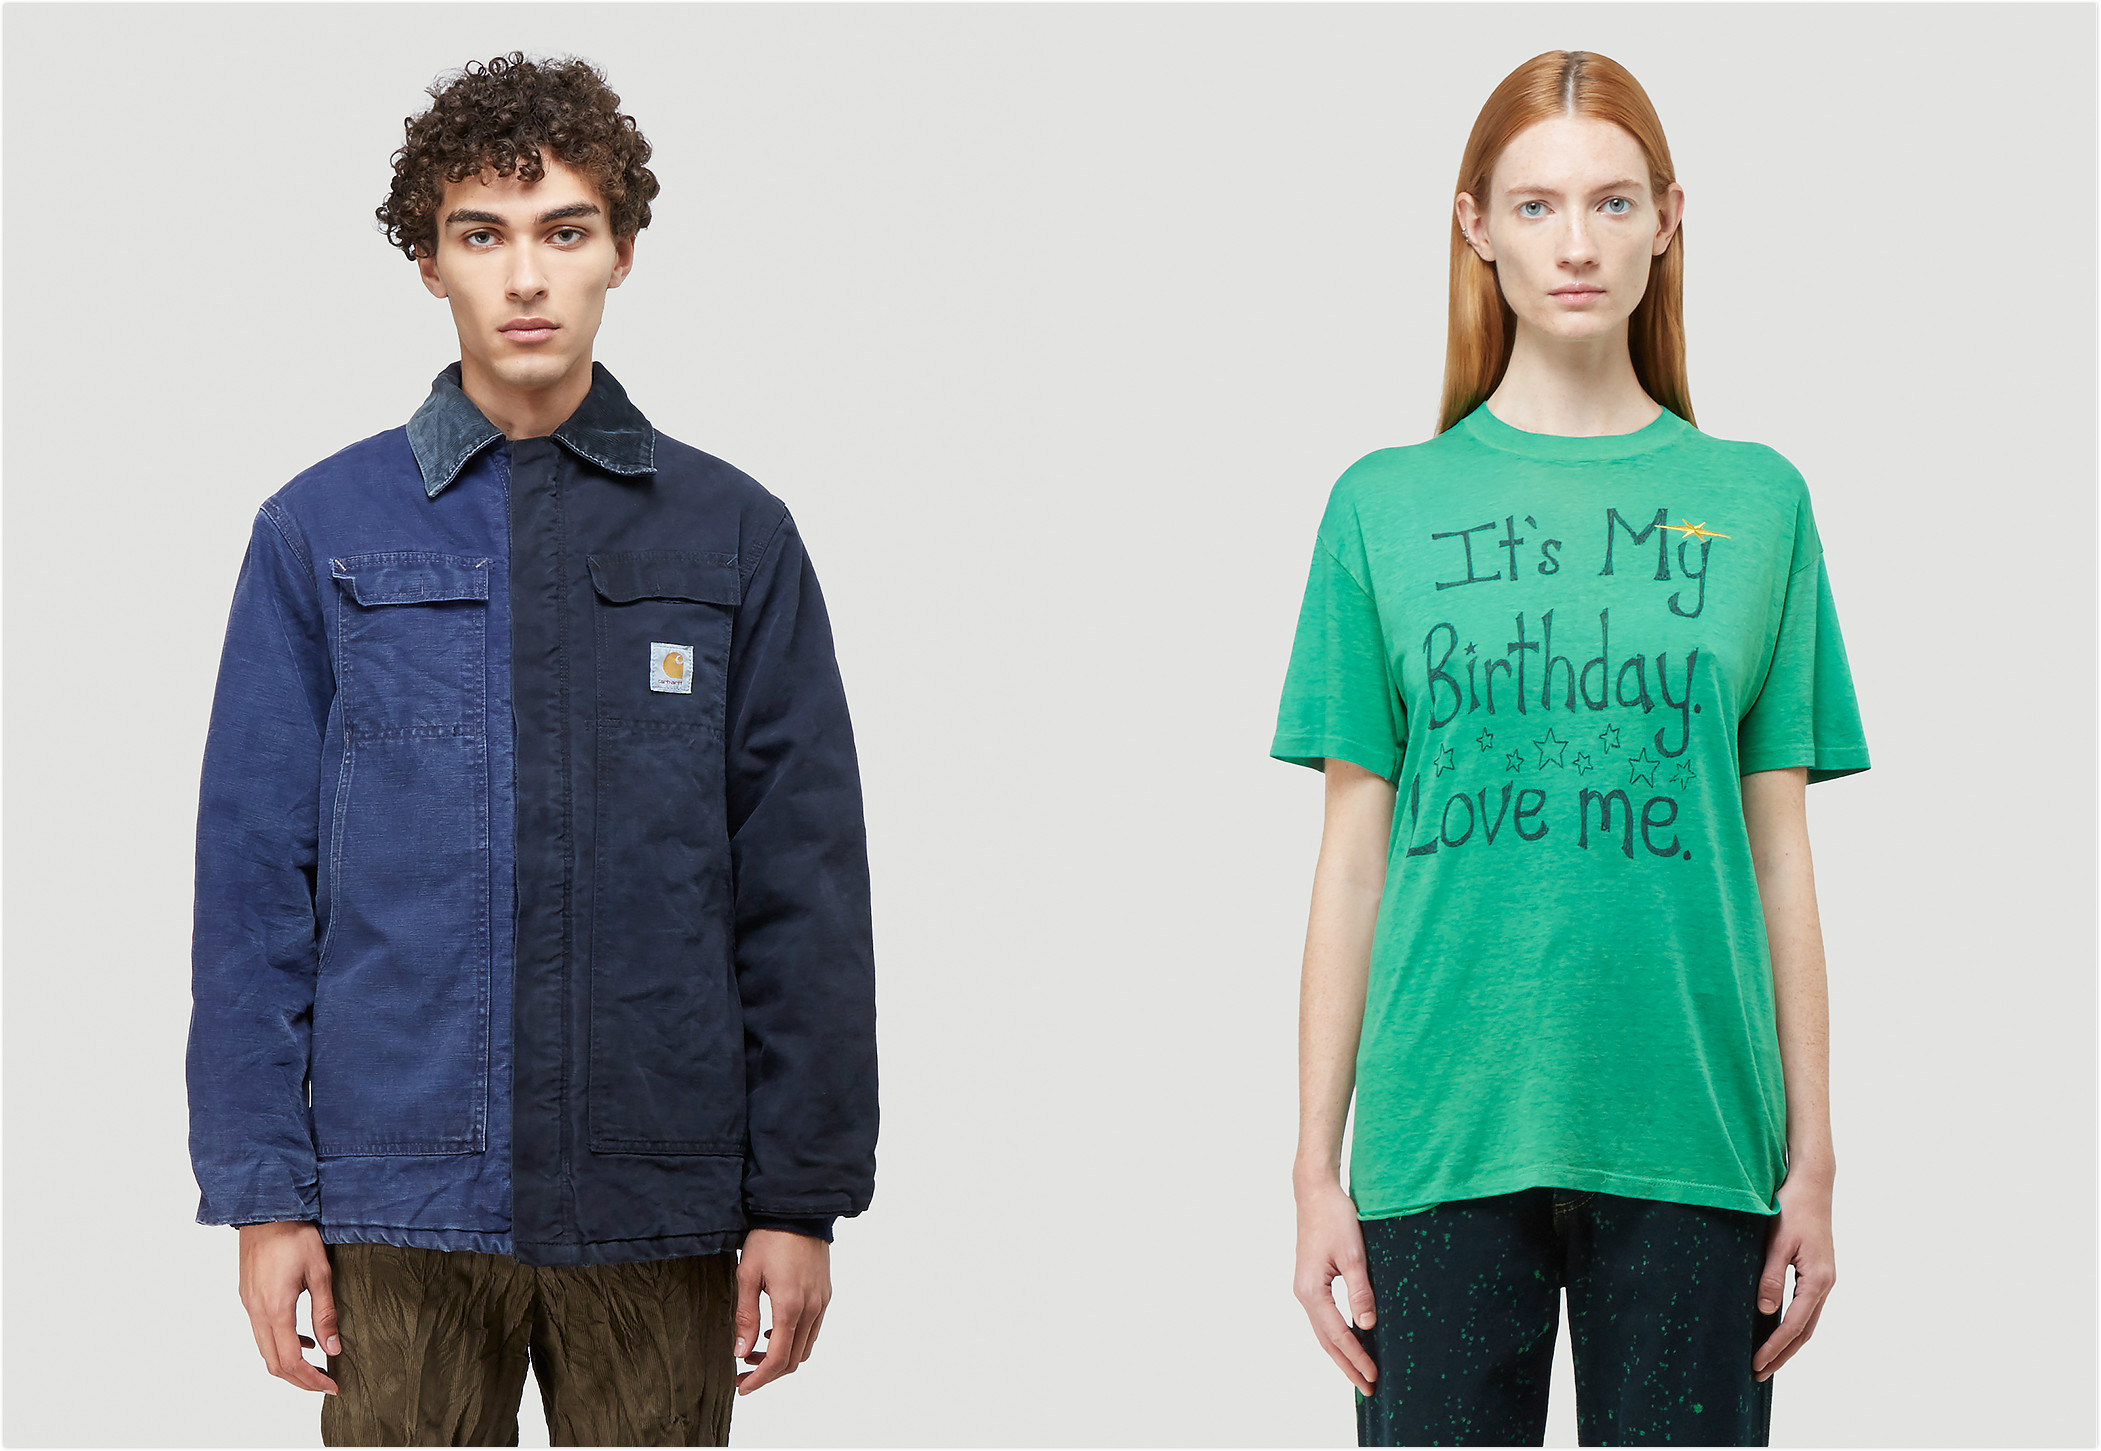 Looks from Division x Carhartt capsule, and Phipps Gold Label for LN-CC 10th Anniversary 10.10 project.